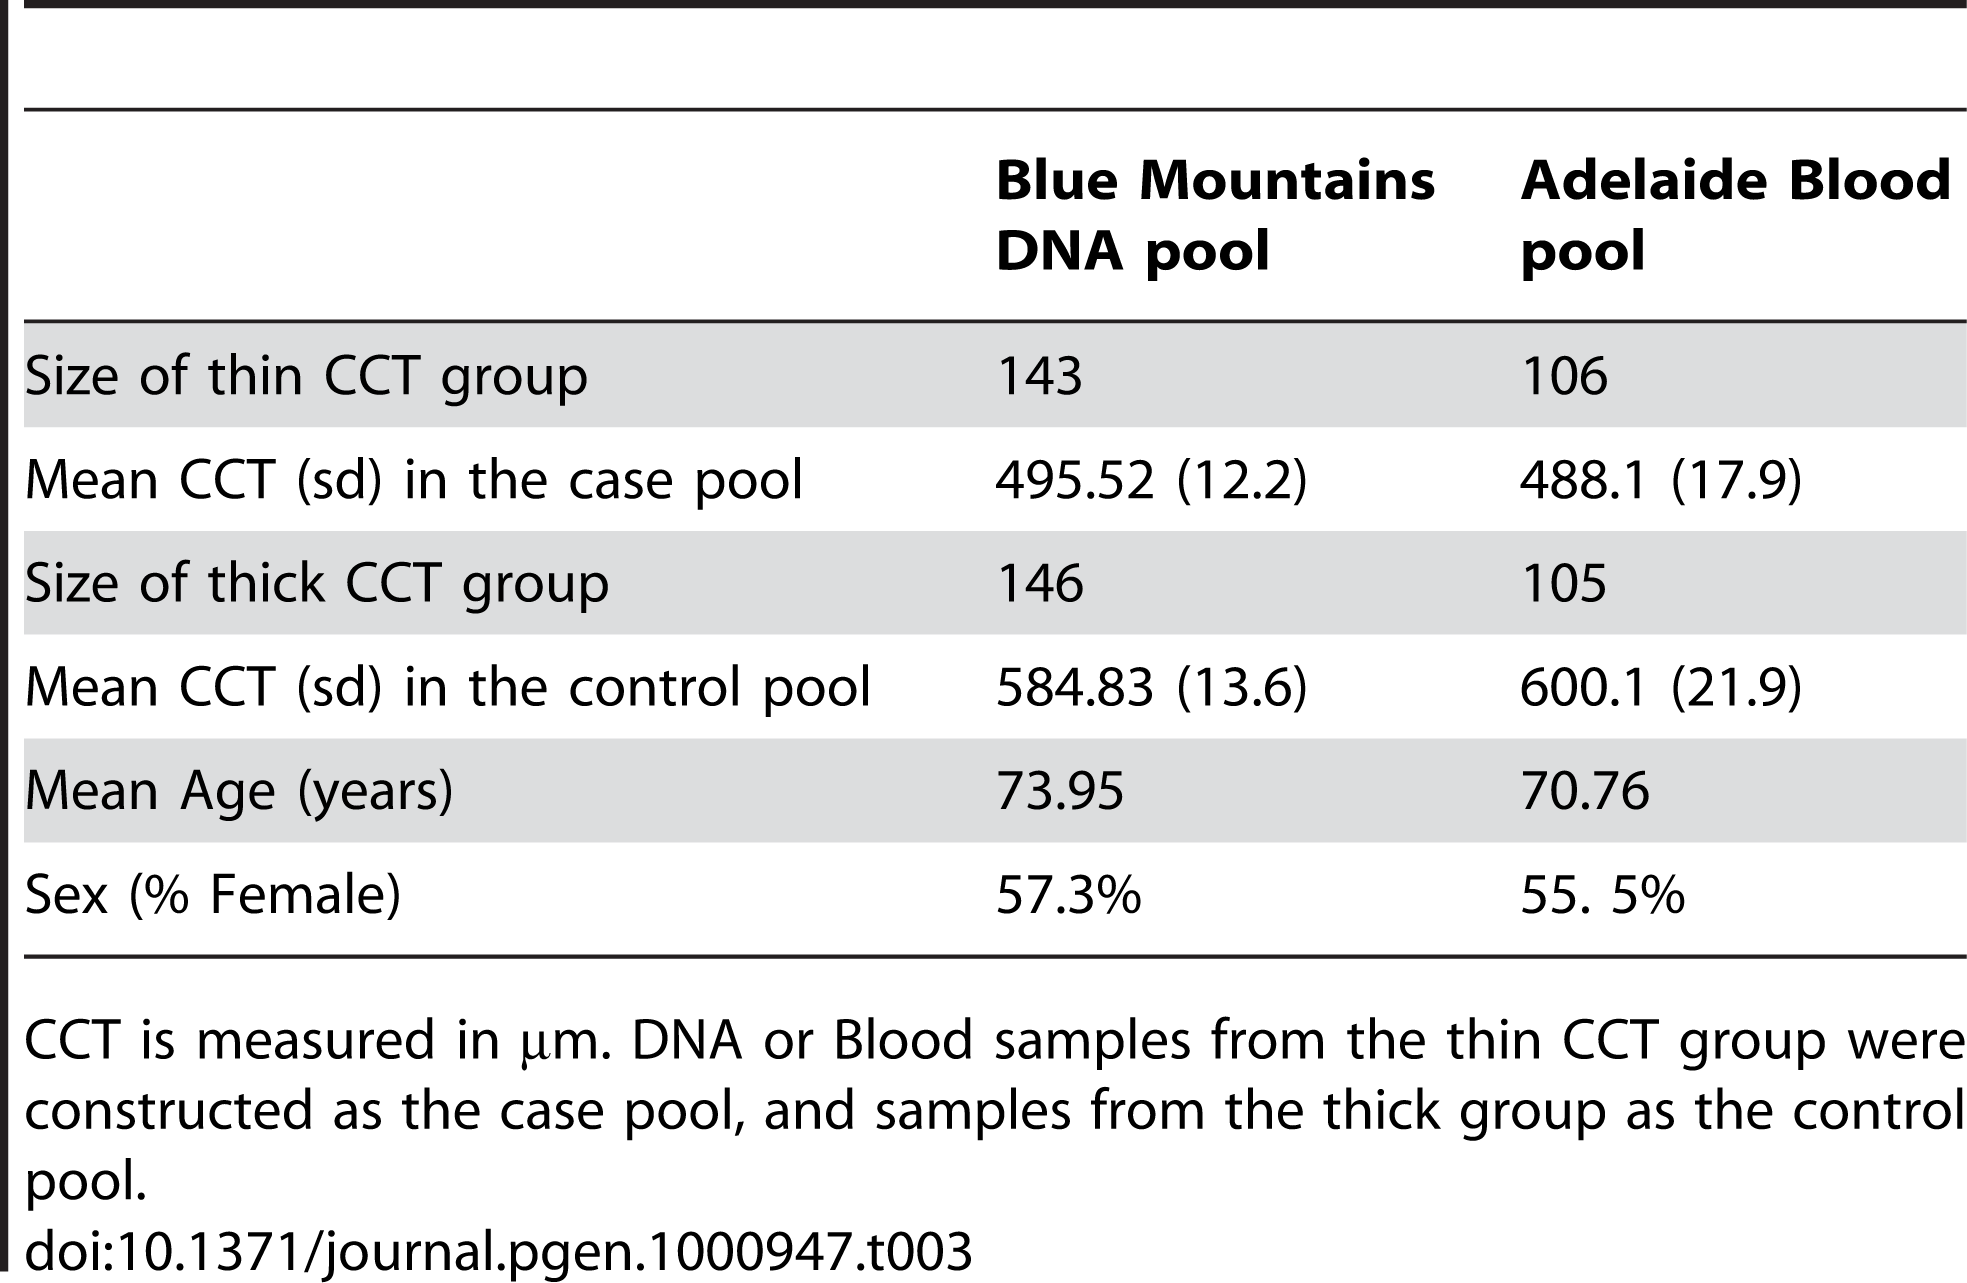 Descriptive statistics for central corneal thickness (CCT) in the two Australian pooled samples.